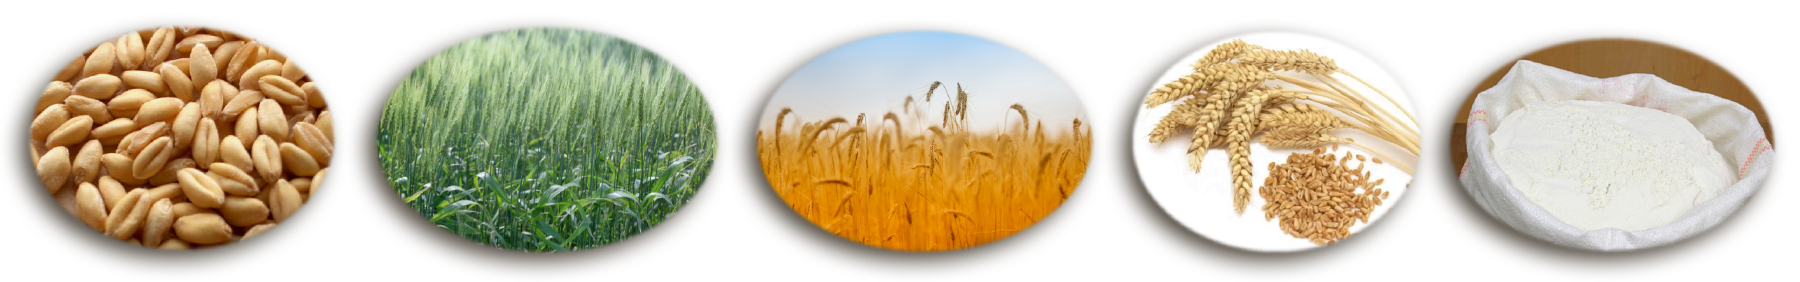 National agriculture in the. Grains clipart wheat head